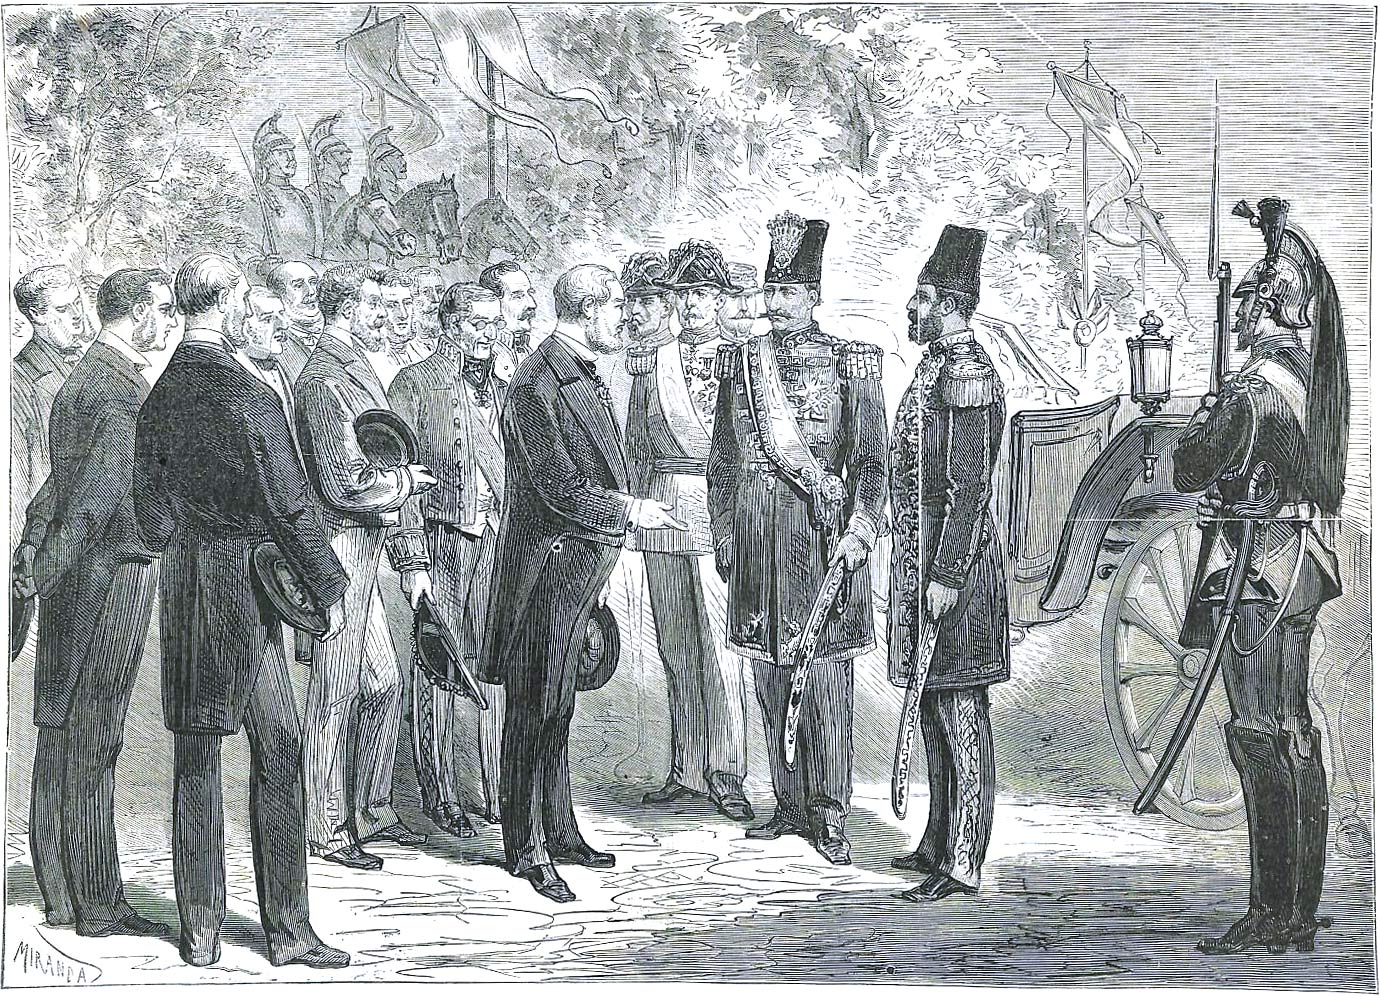 Naser al-Din Shah Qajar being received by the prefect of the Seine Department in Place de l'Etoile, Paris, France, illustration by Miranda from L'Illustration, Journal Universel, No 1585, Volume LXII, July 12, 1873.